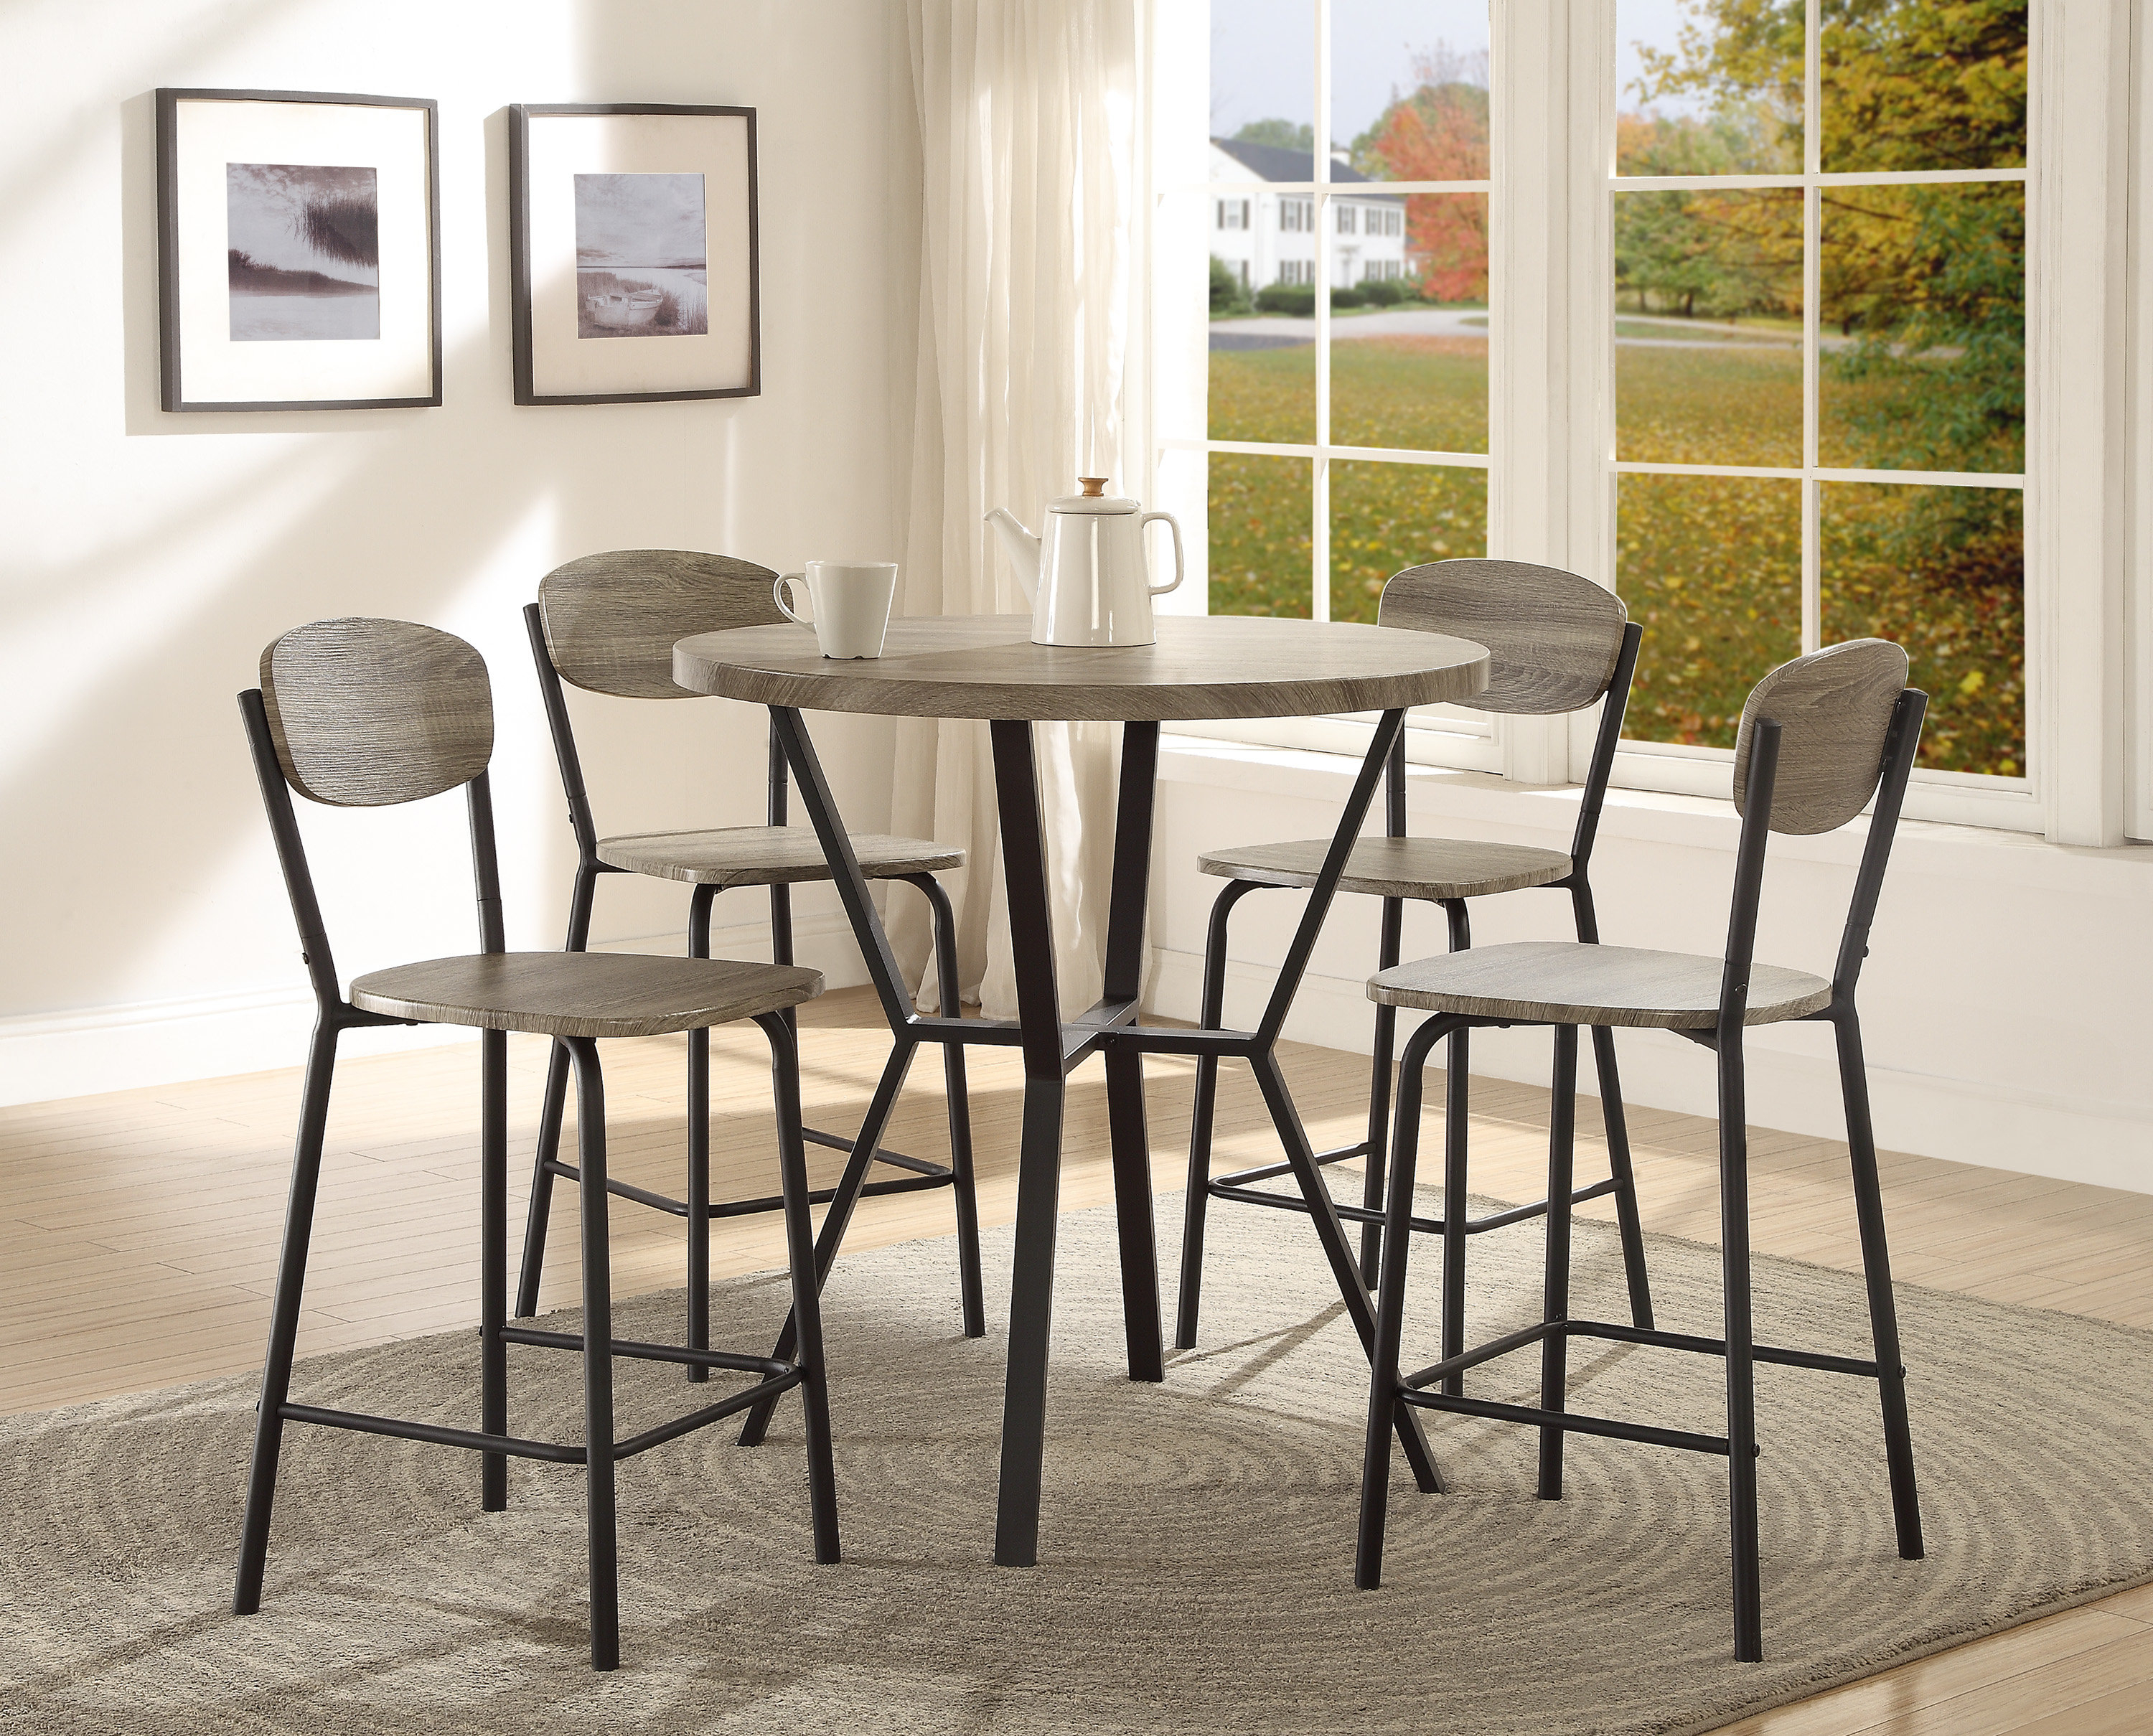 Felicia 5 Piece Counter Height Dining Set Throughout Most Recently Released Ephraim 5 Piece Dining Sets (View 14 of 20)